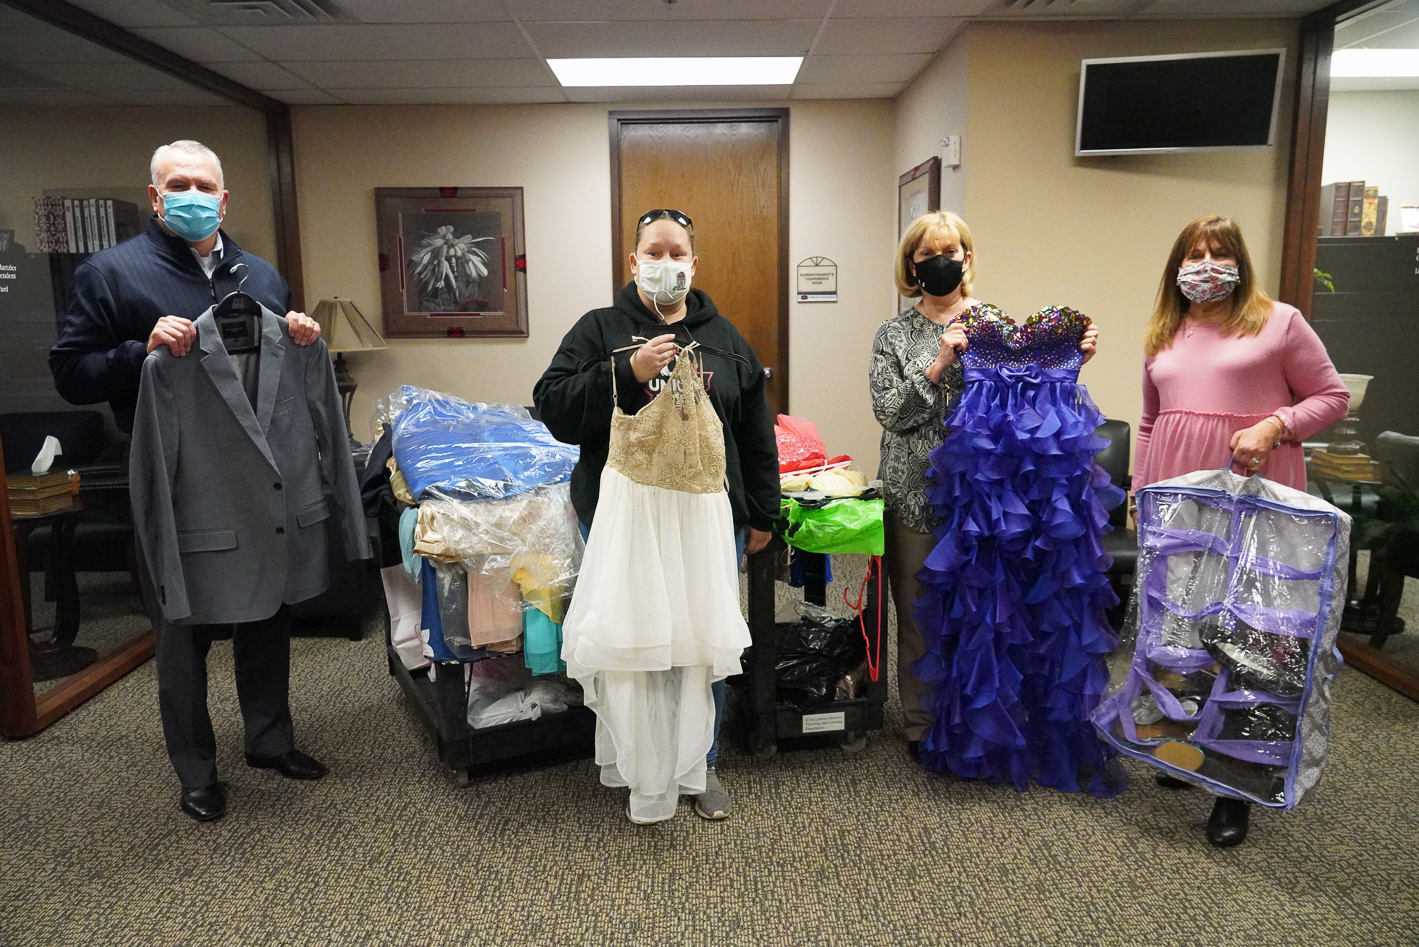 About 500 dresses and suits have been donated for the upcoming Prom Dress/Suits Boutique planned for next month by the Union PTA Council. PTA organizer Jean Jones is collecting all the donated garments so they can be dry-cleaned before the boutique. Jones is pictured here with the white dress, along with Superintendent Dr. Kirt Hartzler, and executive administrative assistants Jamie Ward and Karen Howard at the Education Service Center. The boutique will take place March 11, March 13 and March 22- 24 in the Redzone Room at the UMAC.  Students will be able to select and take home garments at no charge for the prom. Because of the pandemic, changes have been made to the prom in an effort to promote safety of the students. This year, prom will be for seniors and their dates only at the Expo Center from 8 p.m. until midnight on Saturday, April 24. For more information about the boutique, contact Jones at Jeanmjones12@yahoo.com or 918-978-5999.